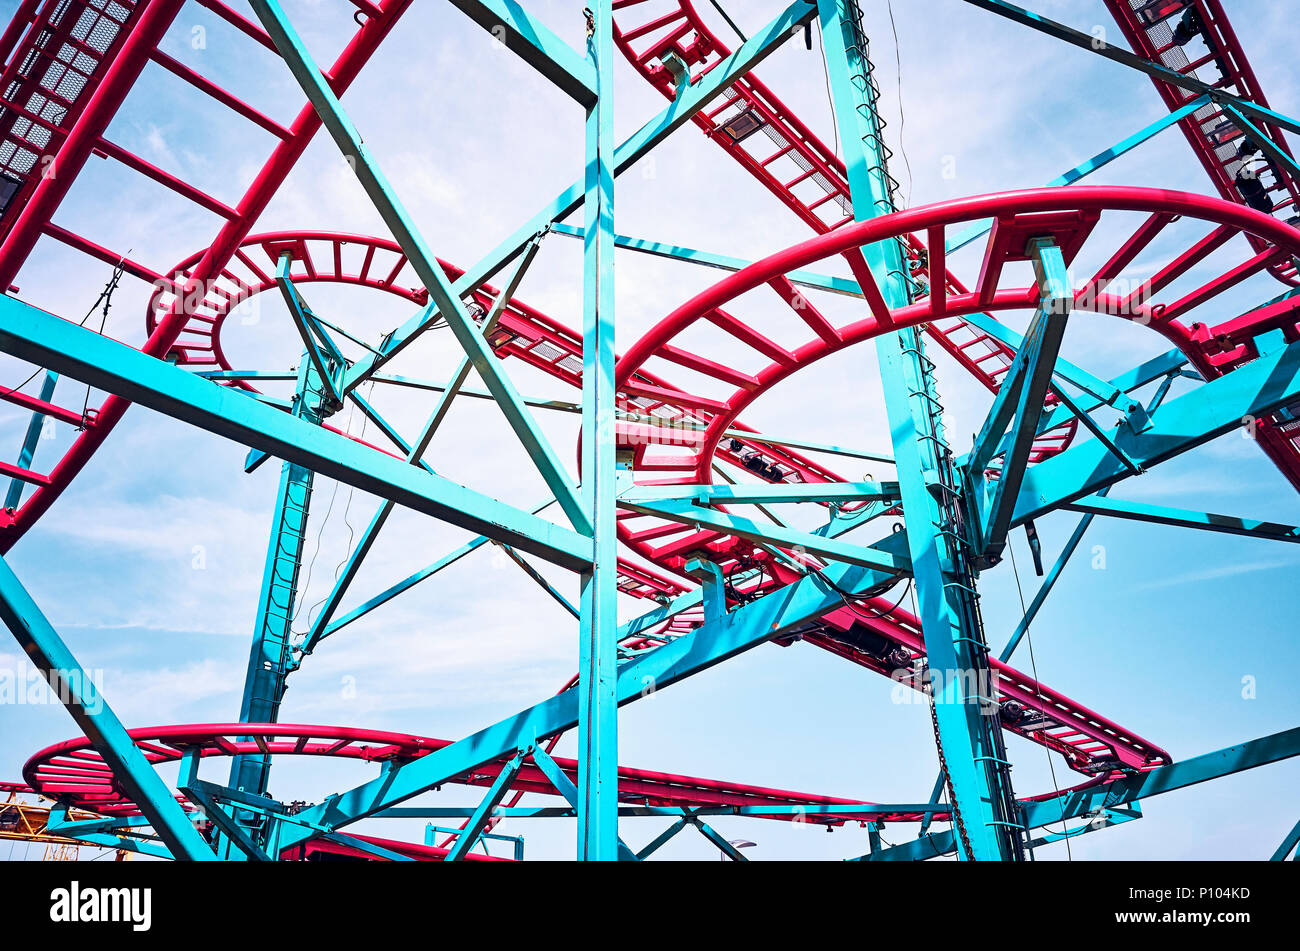 Roller coaster tracks in an amusement park, color toning applied. - Stock Image